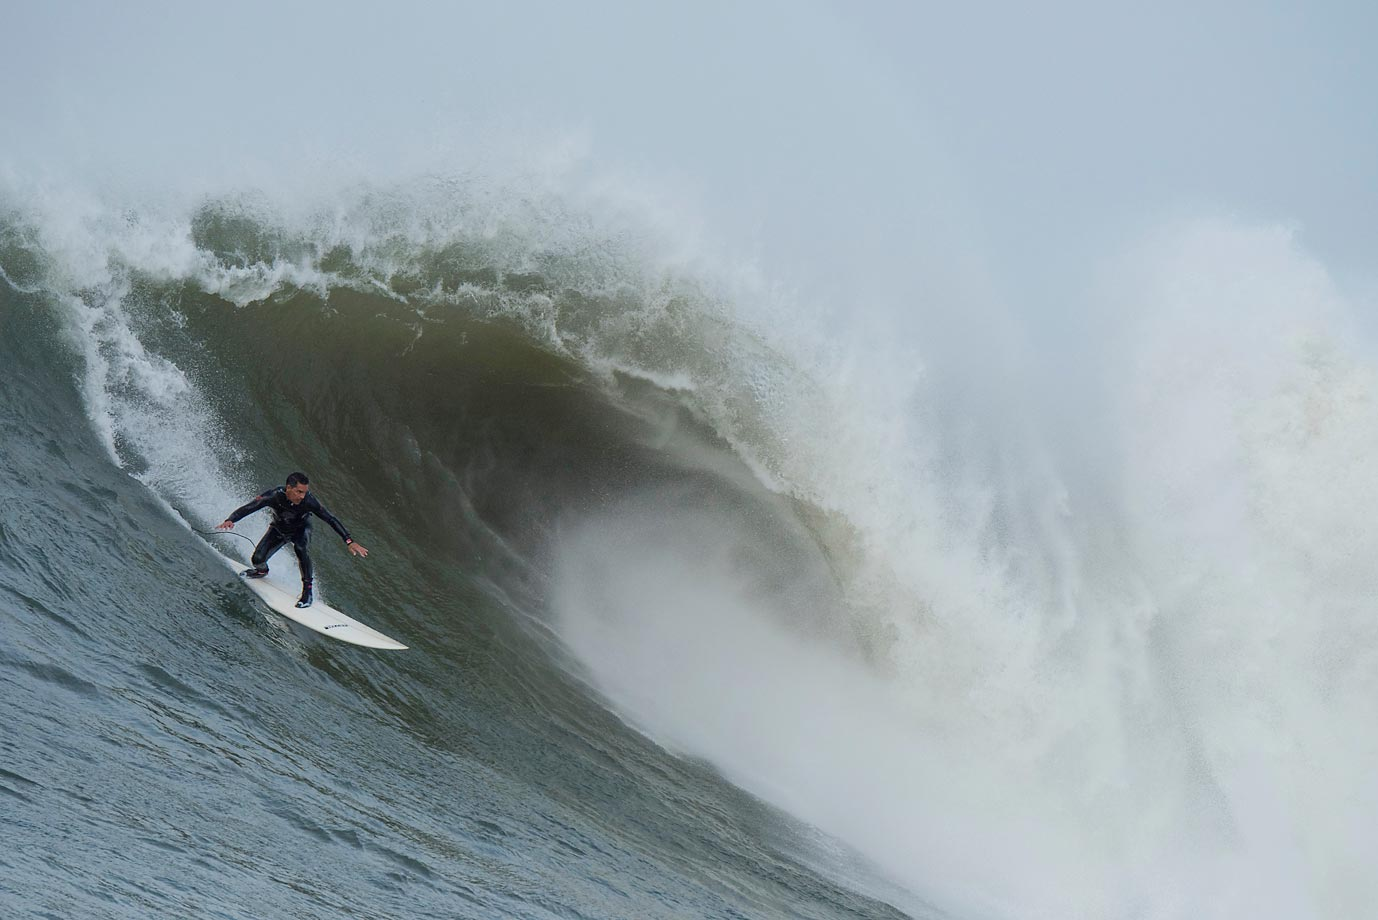 The waves at Mavericks ranged between 35- and 45-feet in height.